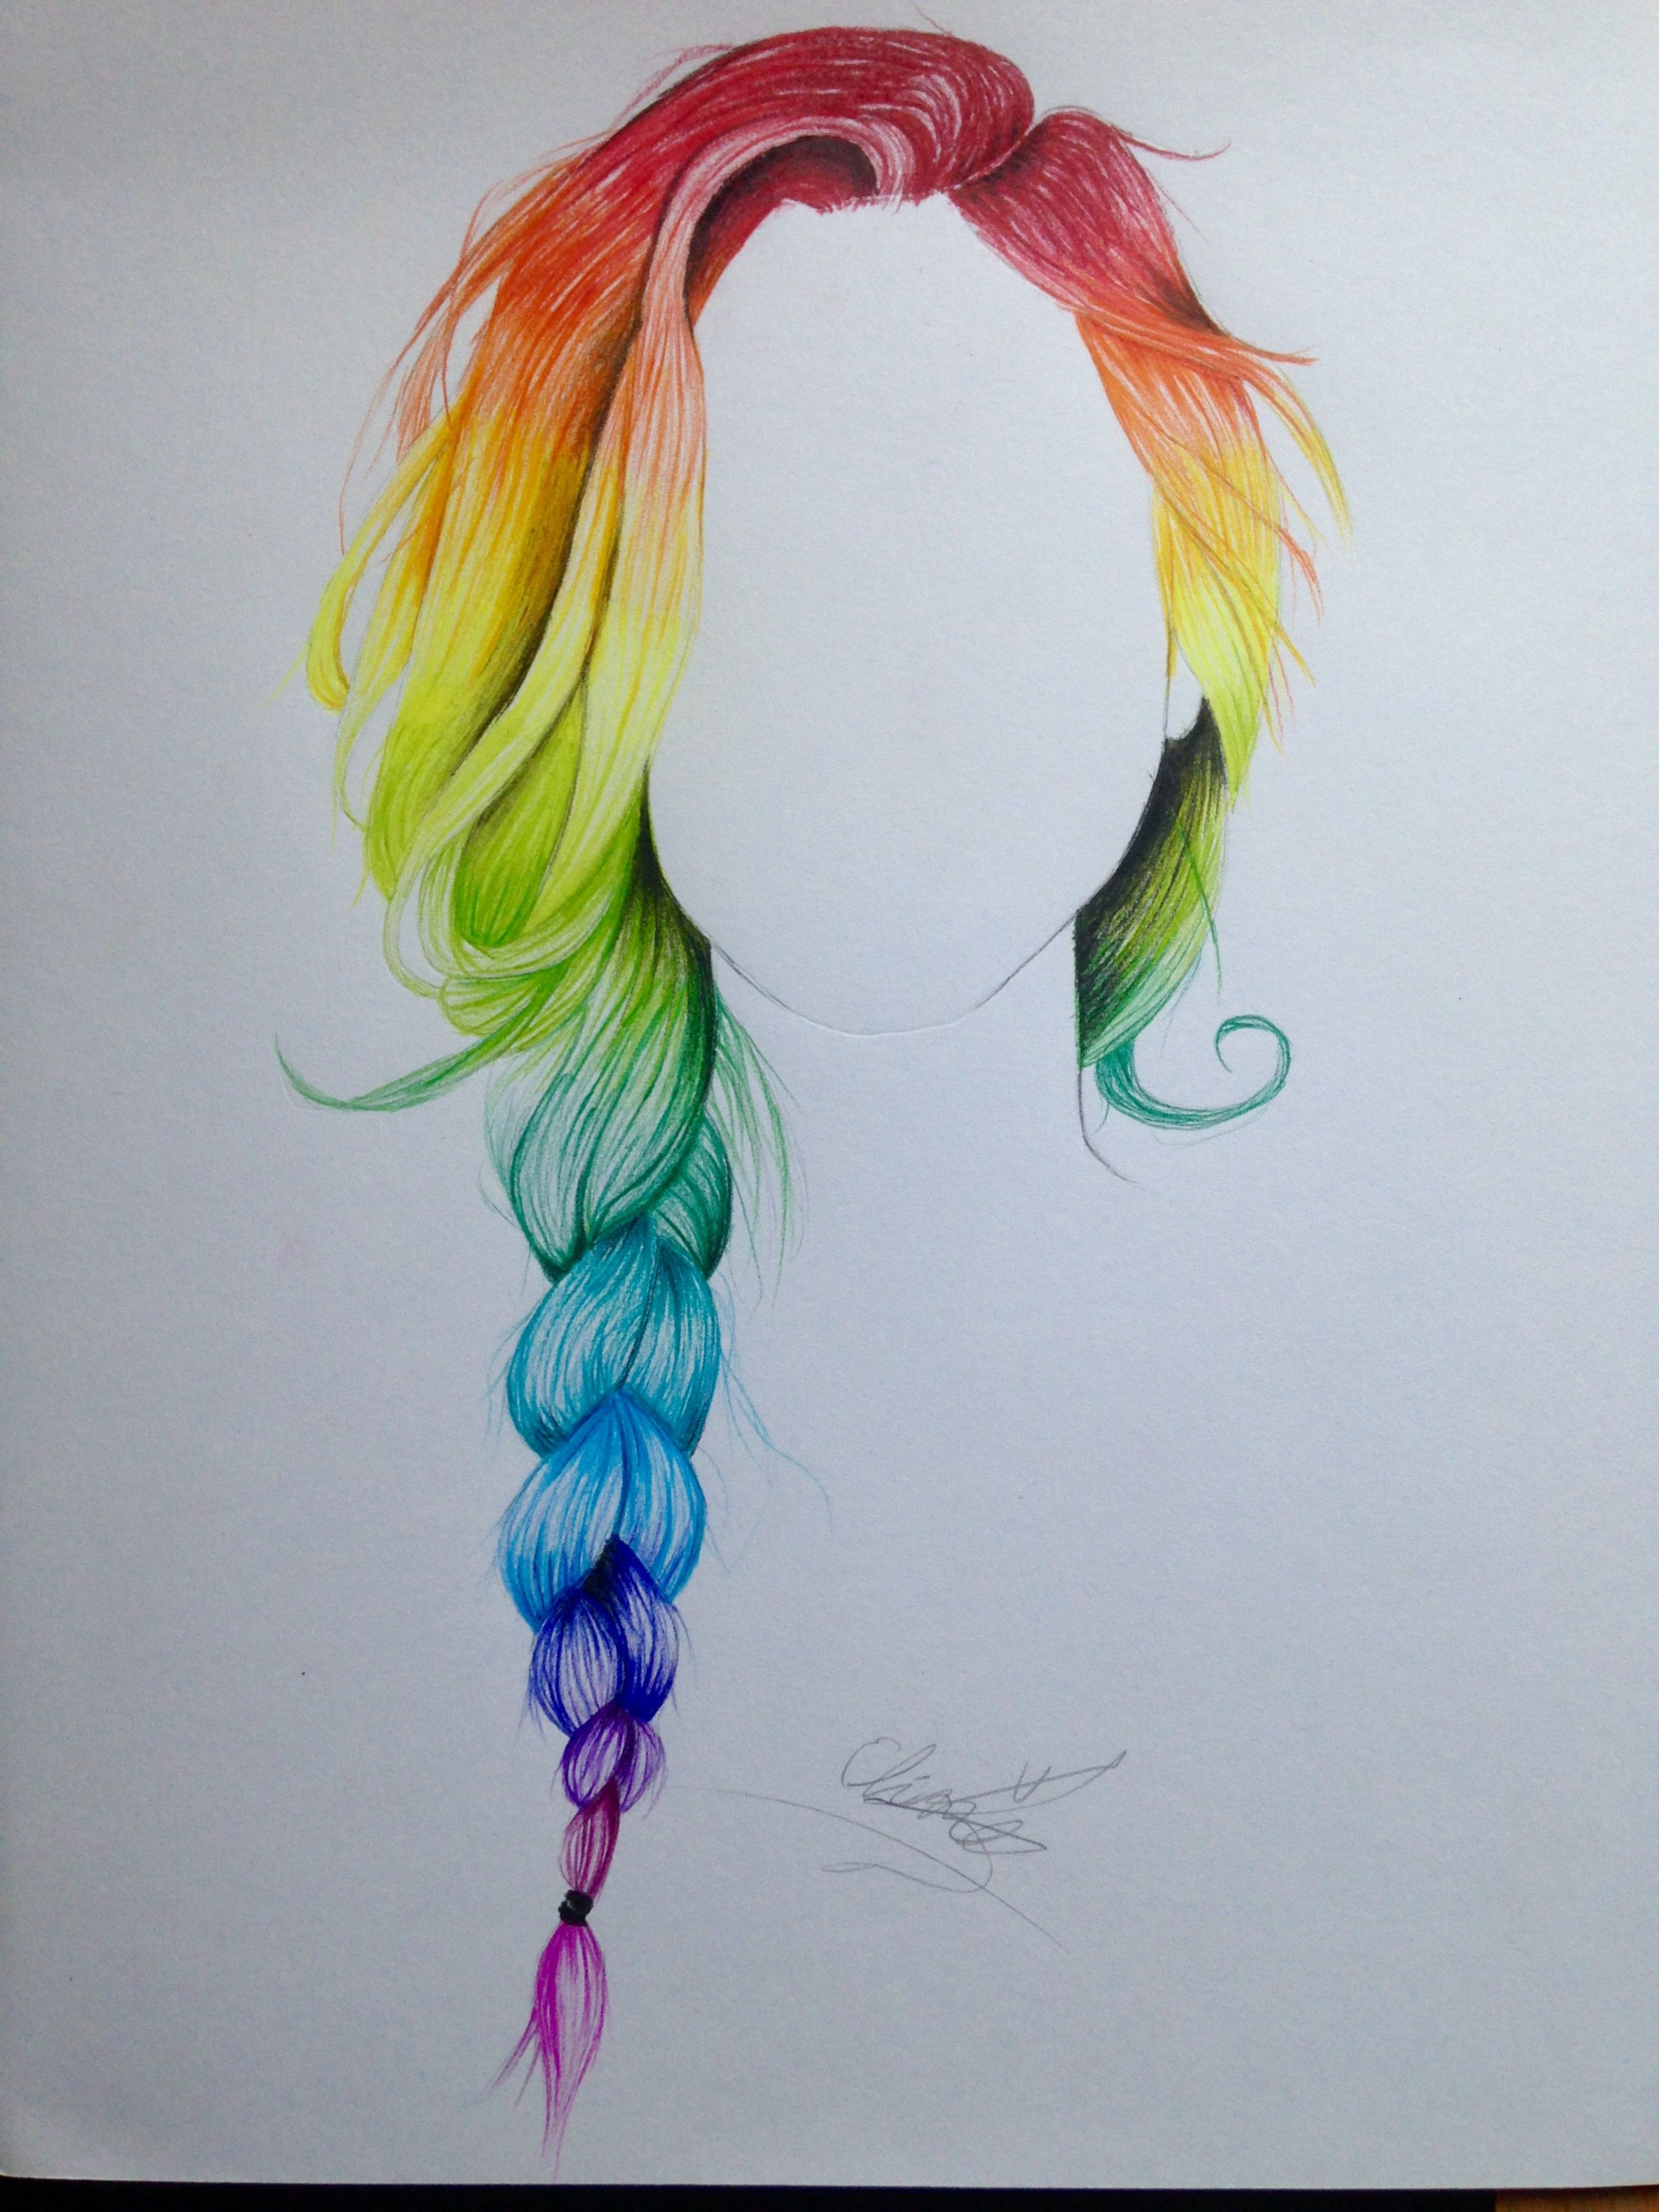 Rainbow Braid Hair Drawing Drawings How To Draw Hair How To